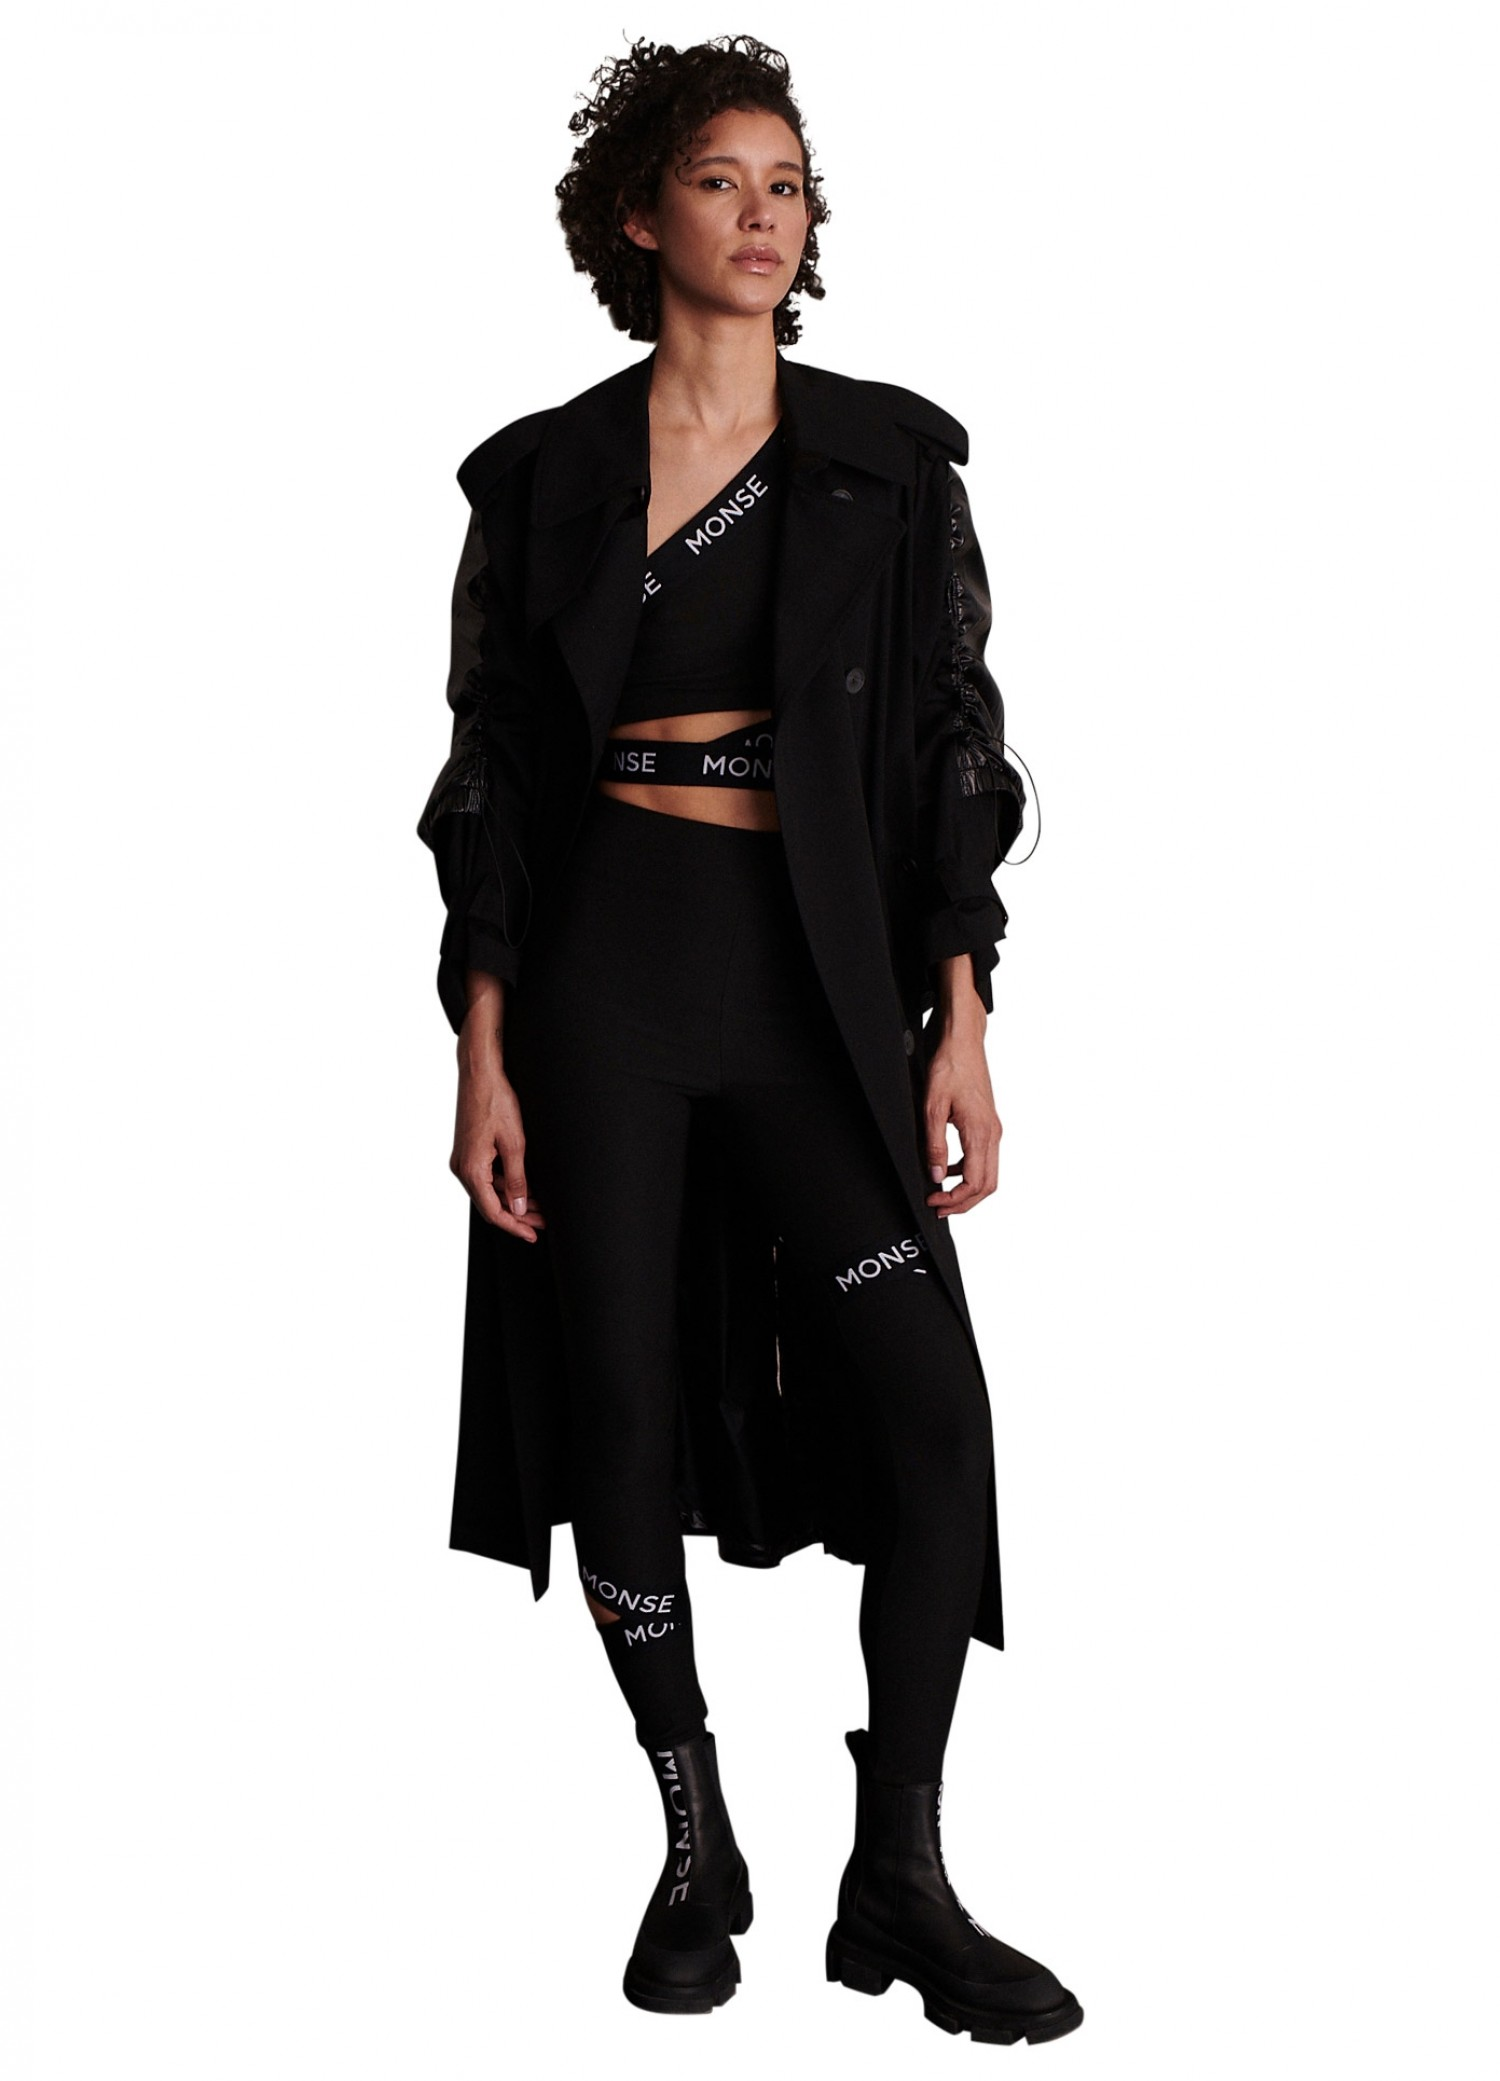 MONSE Drawstring Trench Coat in Black on Model Front View